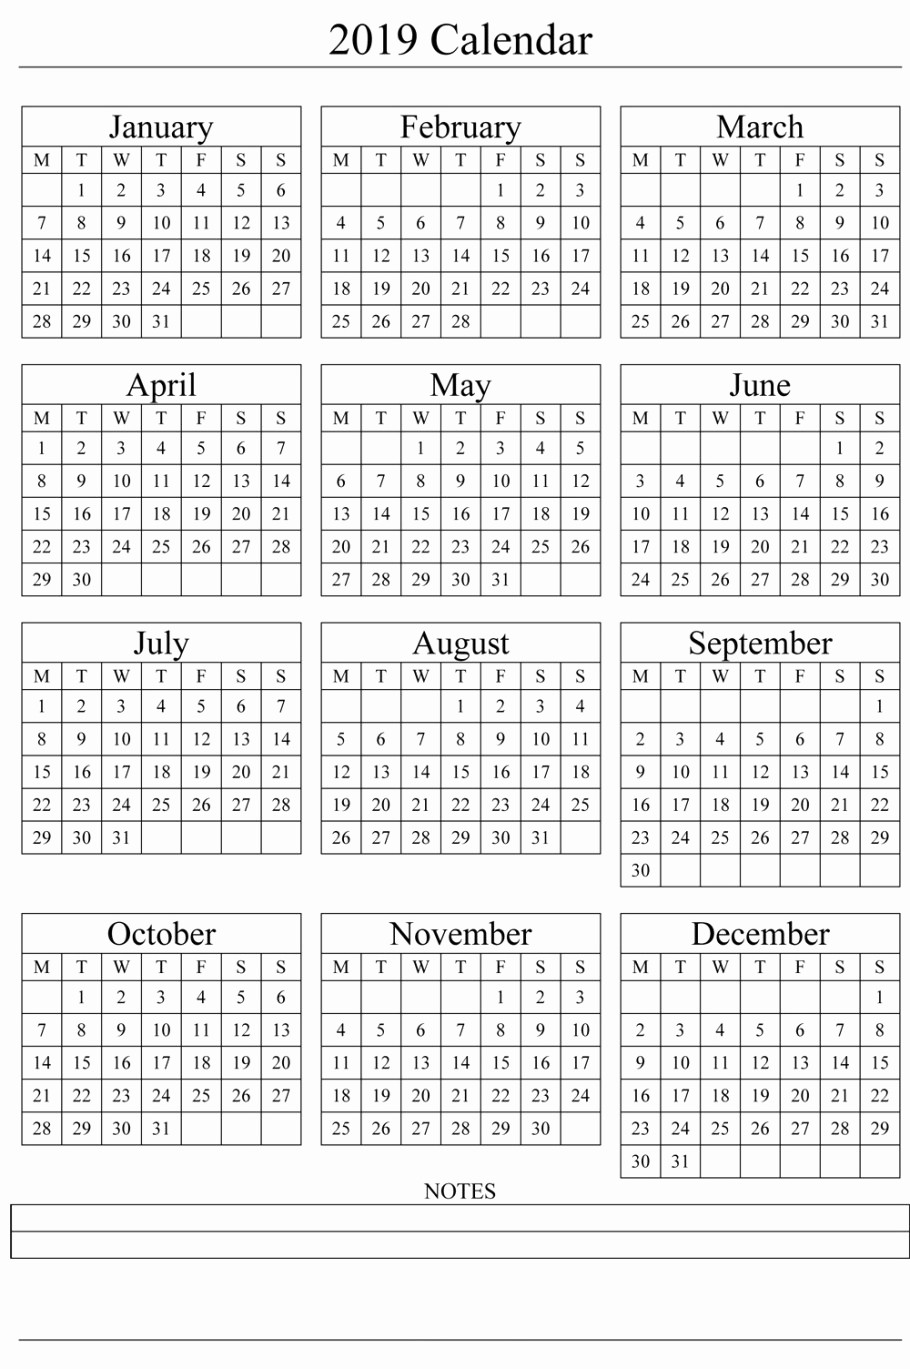 Free Printable Calendar Templates 2019 Awesome 2019 Yearly Calendar Printable Templates – Holidays Pdf